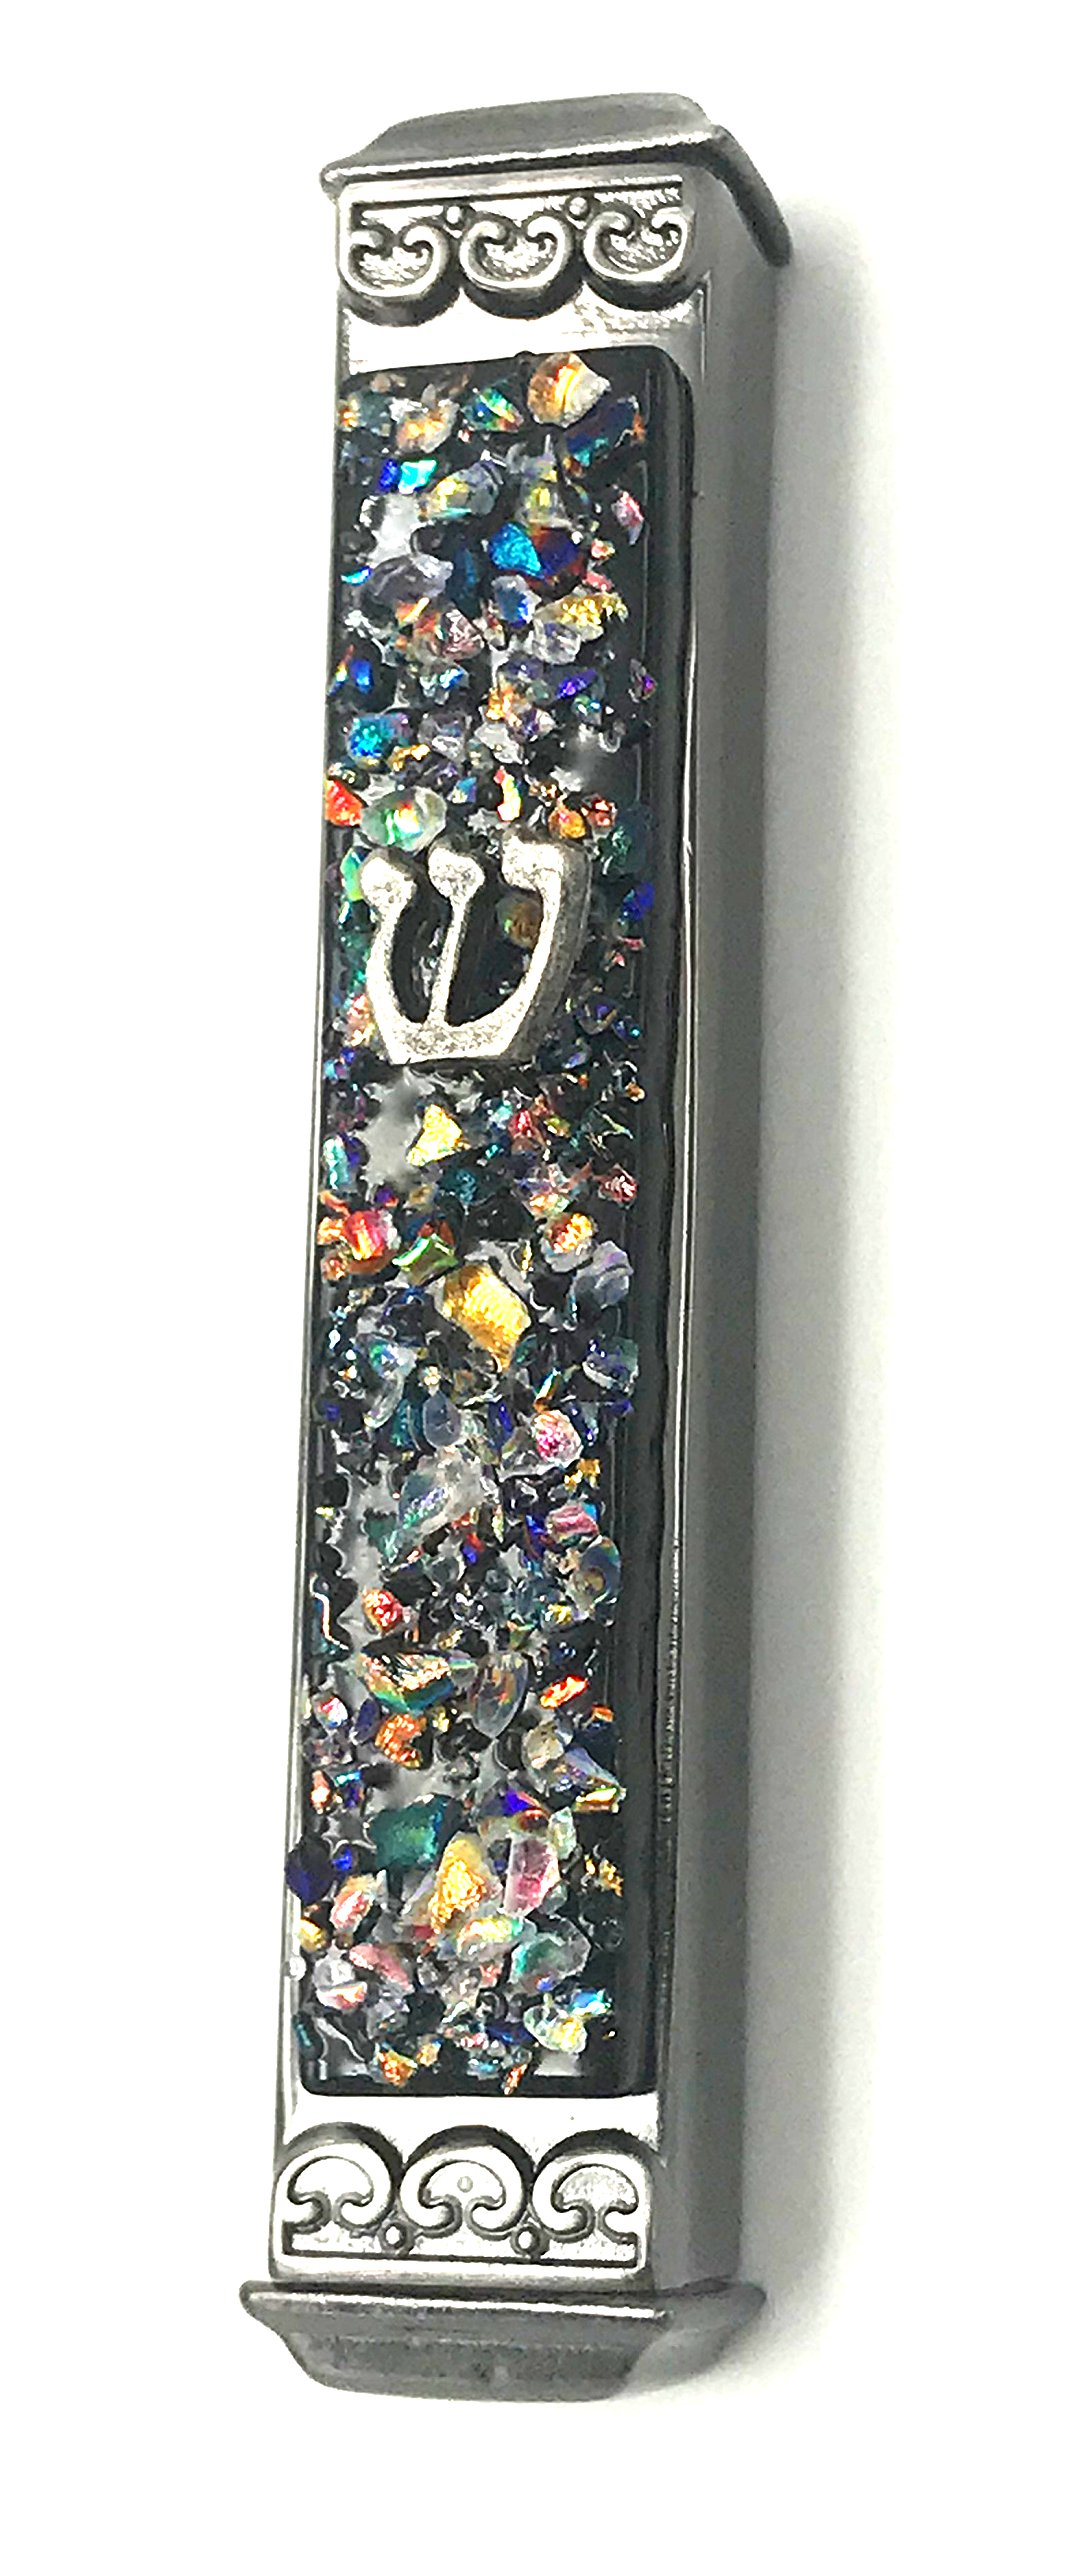 Sparkling Art Glass Mezuzah - 3.5 Inch - Easy Mount - Weatherproof Metal Case - Gift Box and Non-Kosher Scroll Included - Hand Made in USA by Tamara Baskin Art Glass (Black)